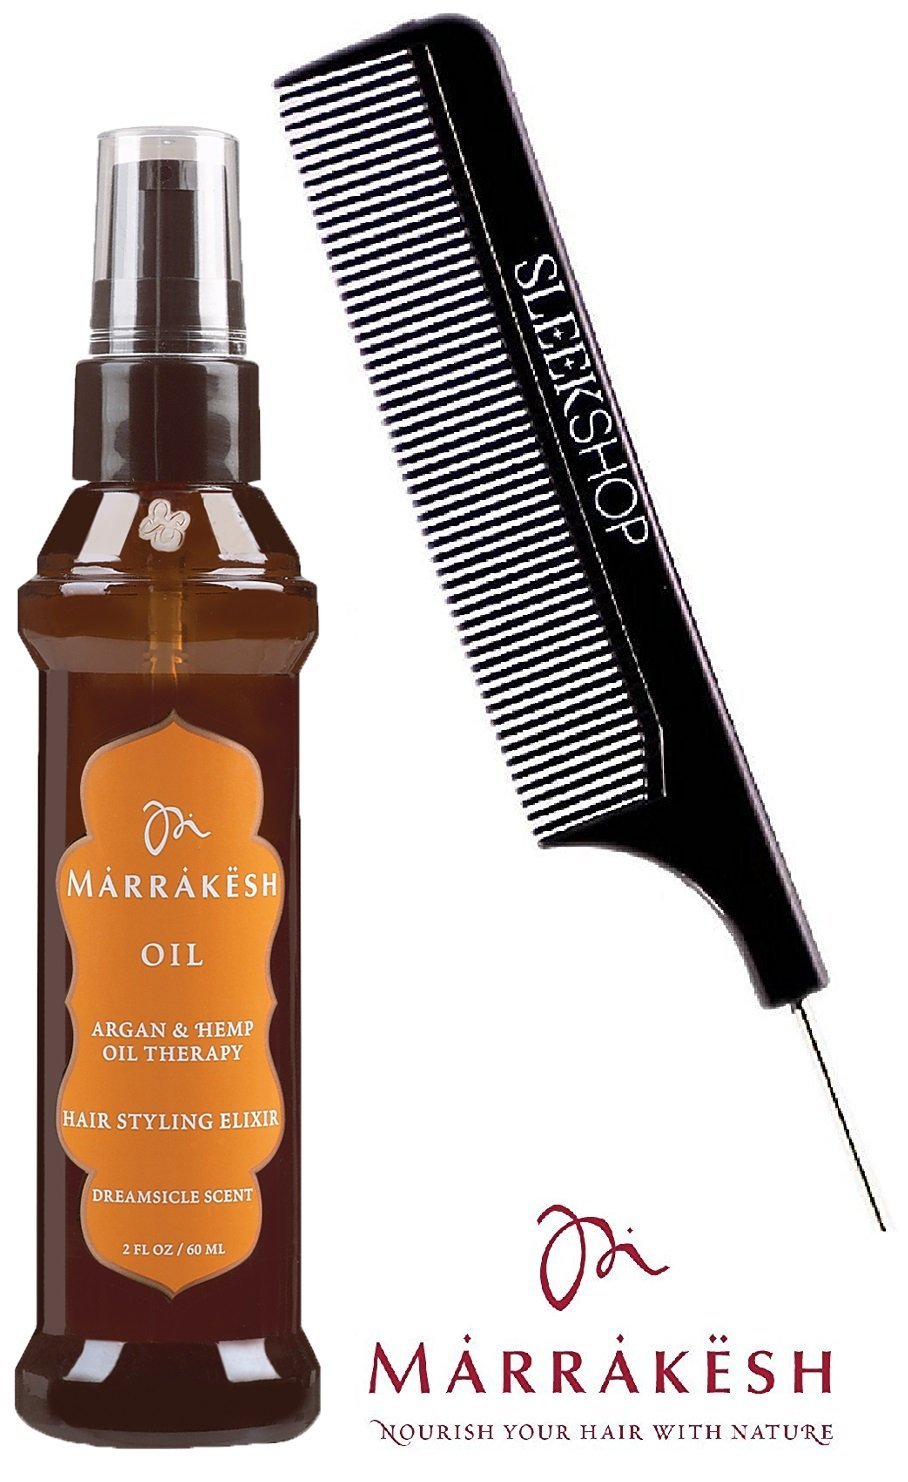 Earthly Body MARRAKESH OIL Hair Styling Elixir with Argan & Hemp Oil Therapy, DREAMSICLE SCENT (with Sleek Steel Pin Tail Comb) (Original, Dreamsicle - 2 oz / 60 ml)